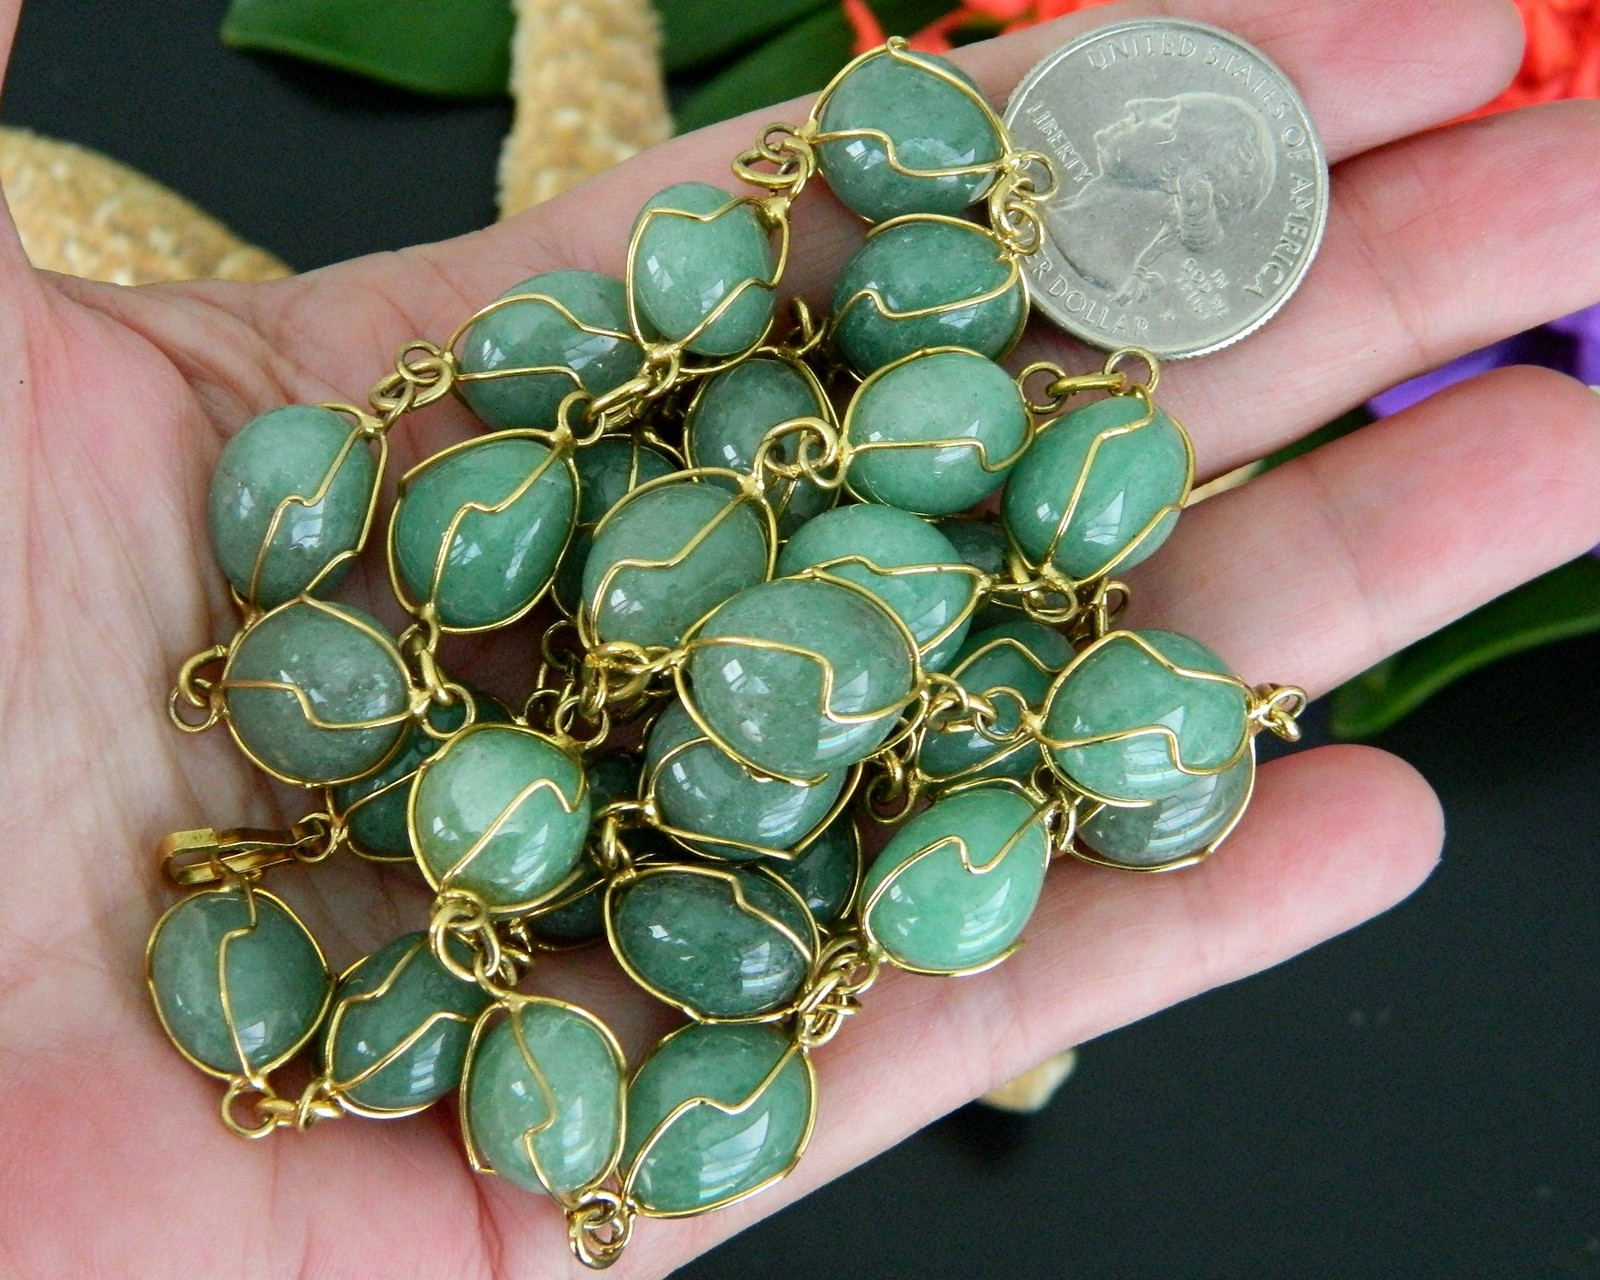 Vintage Green Gemstone Necklace Gold Tone Wire Wrapped Polished Stones